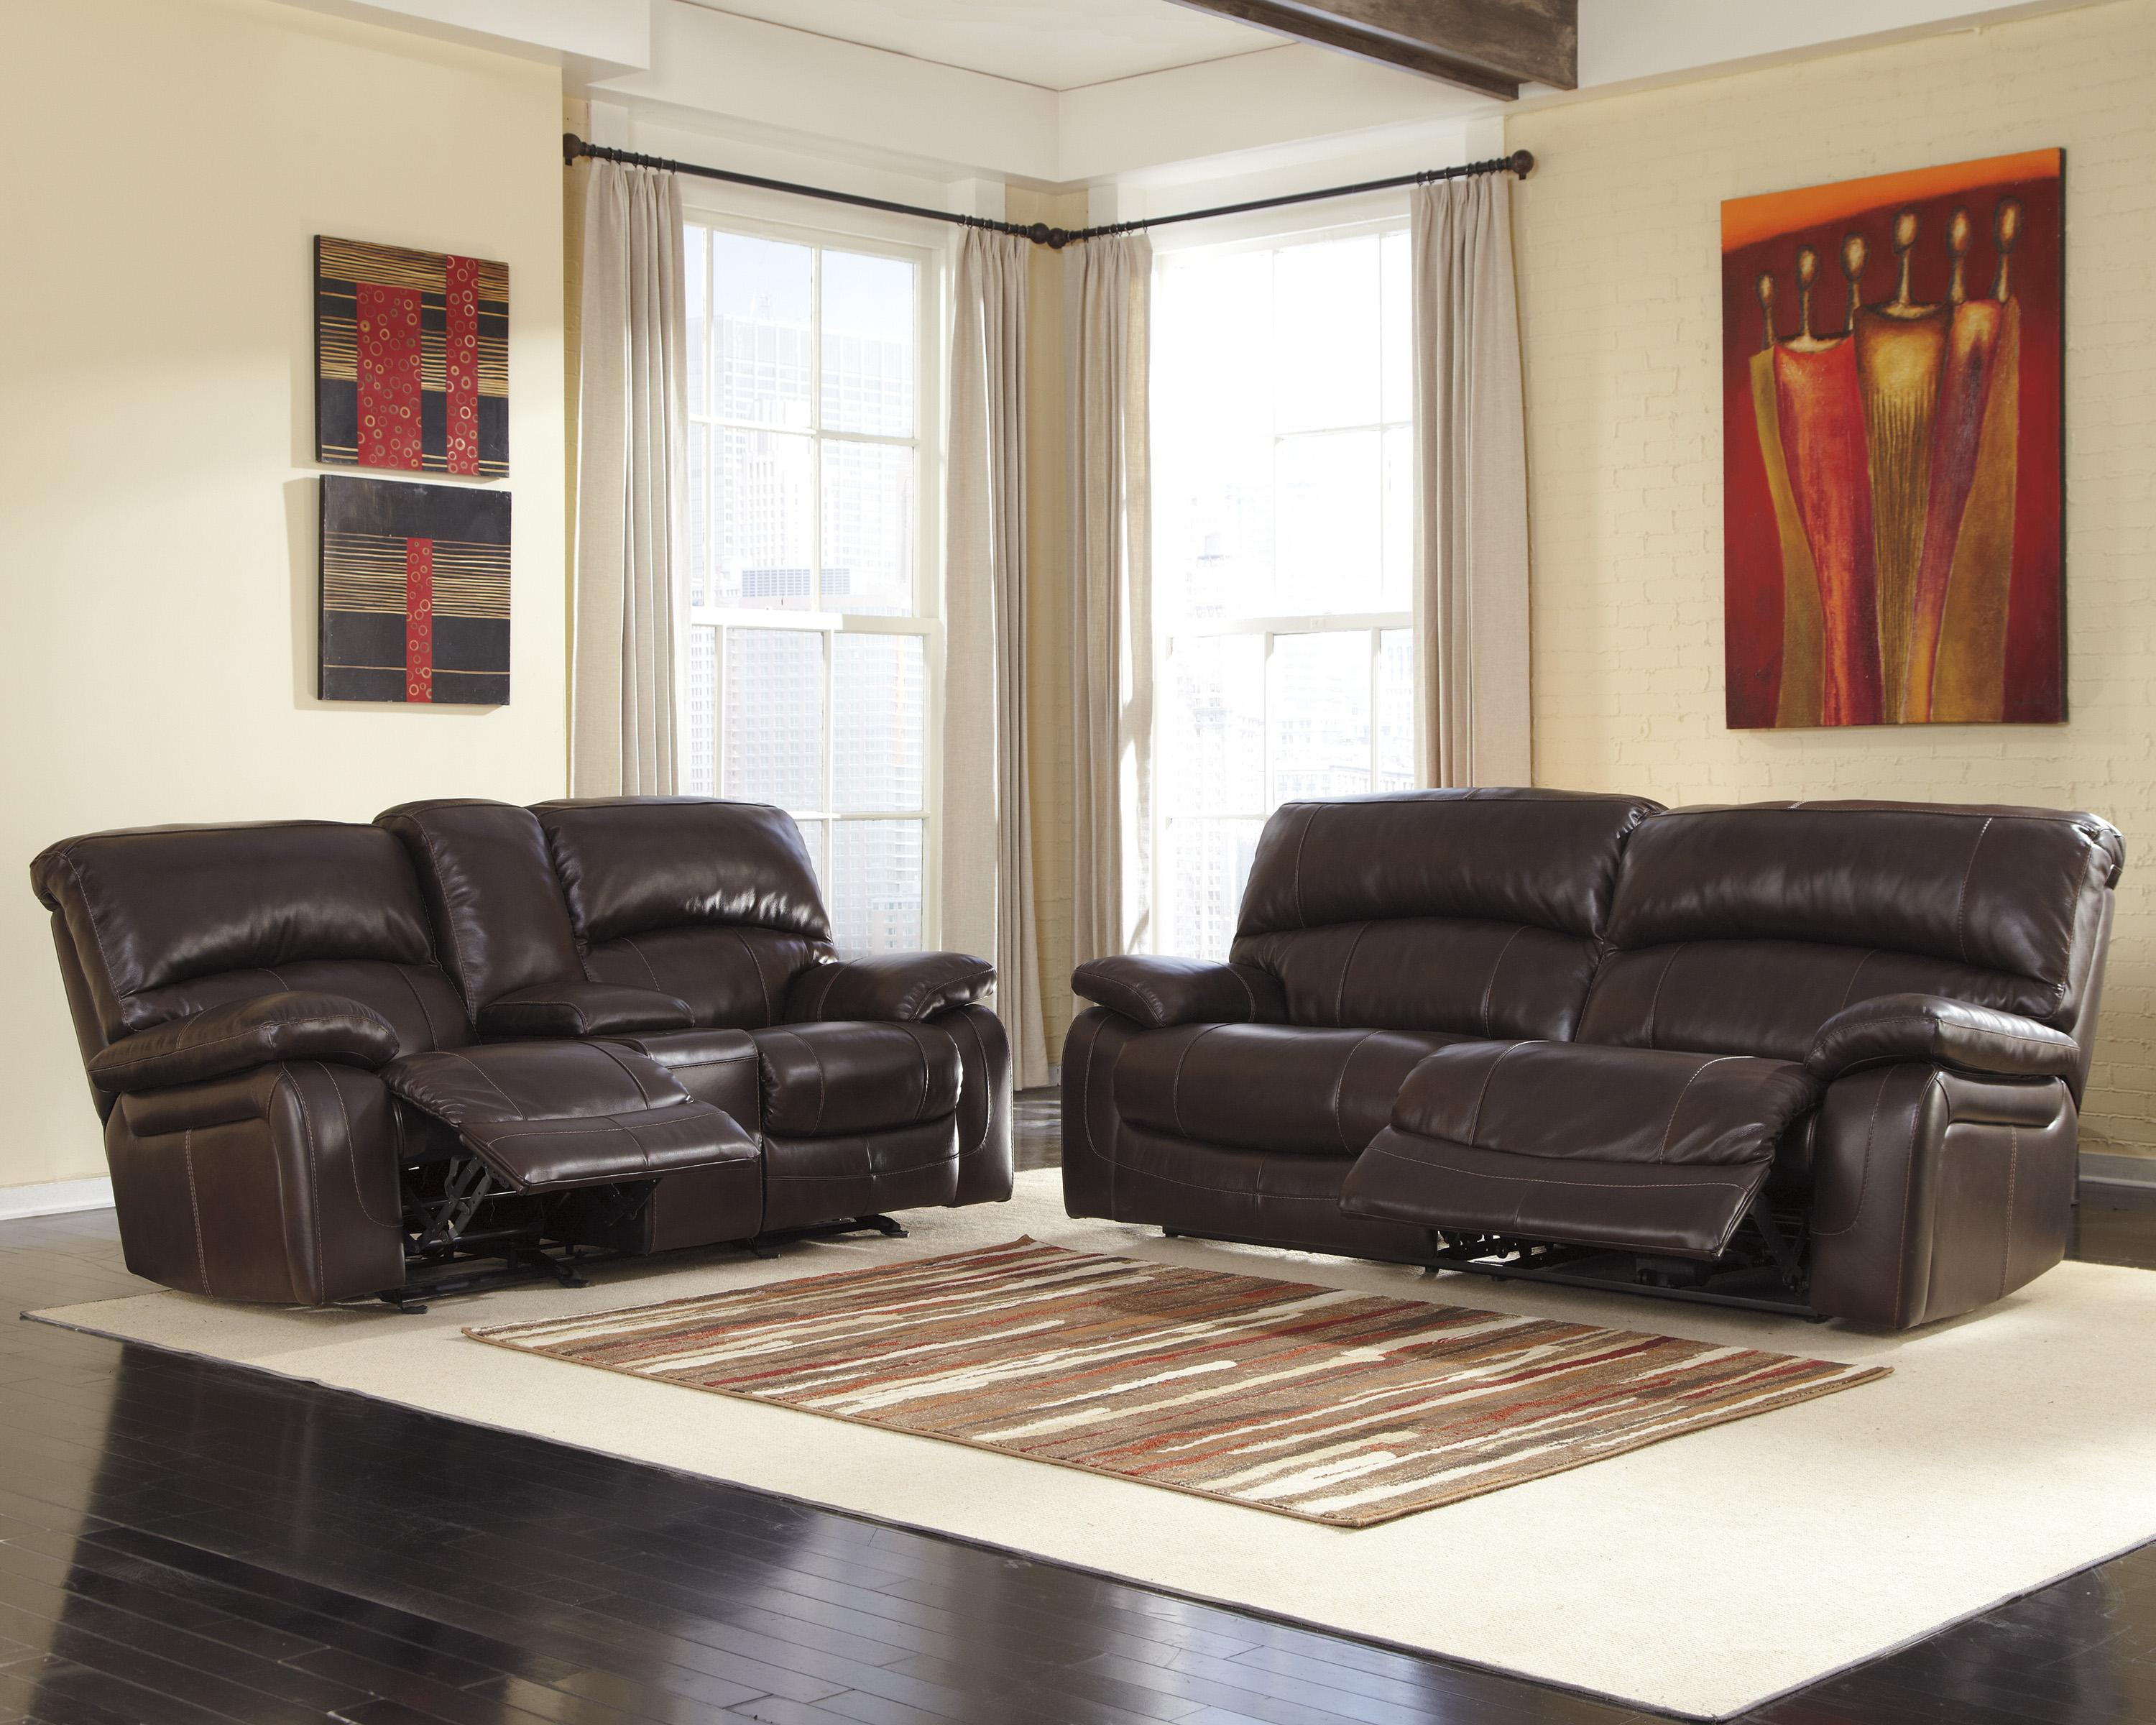 Signature Design by Ashley Damacio - Dark Brown Reclining Living Room Group - Item Number: U98200 Living Room Group 1